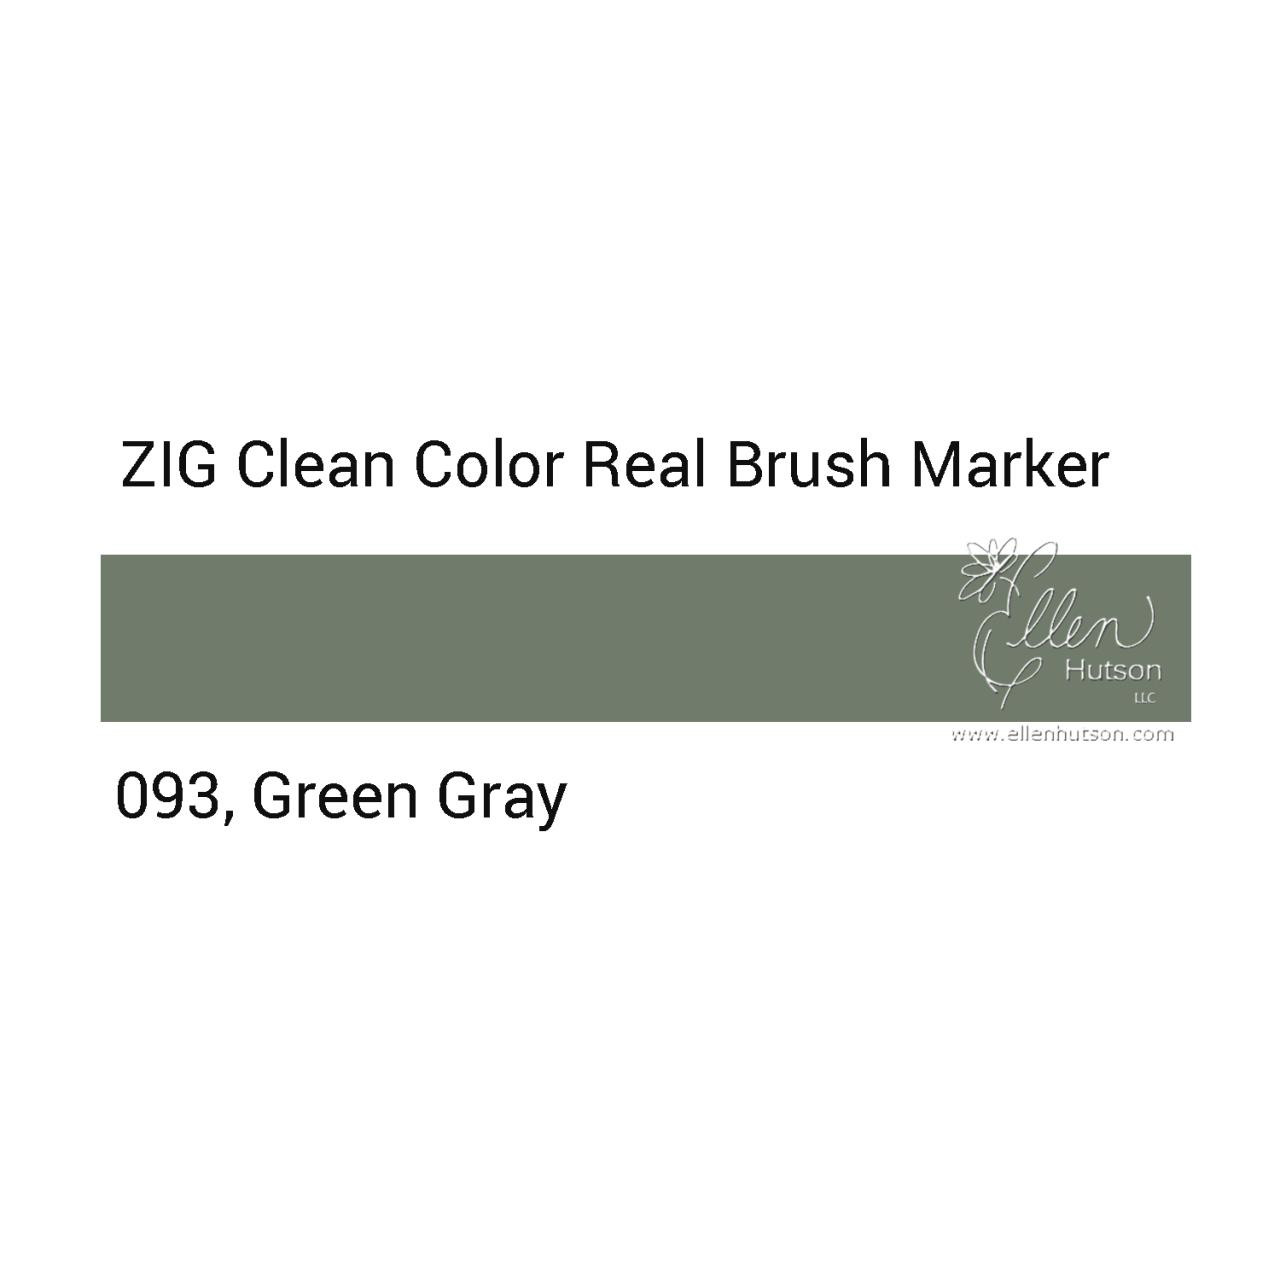 093 - Green Gray, ZIG Clean Color Real Brush Marker -